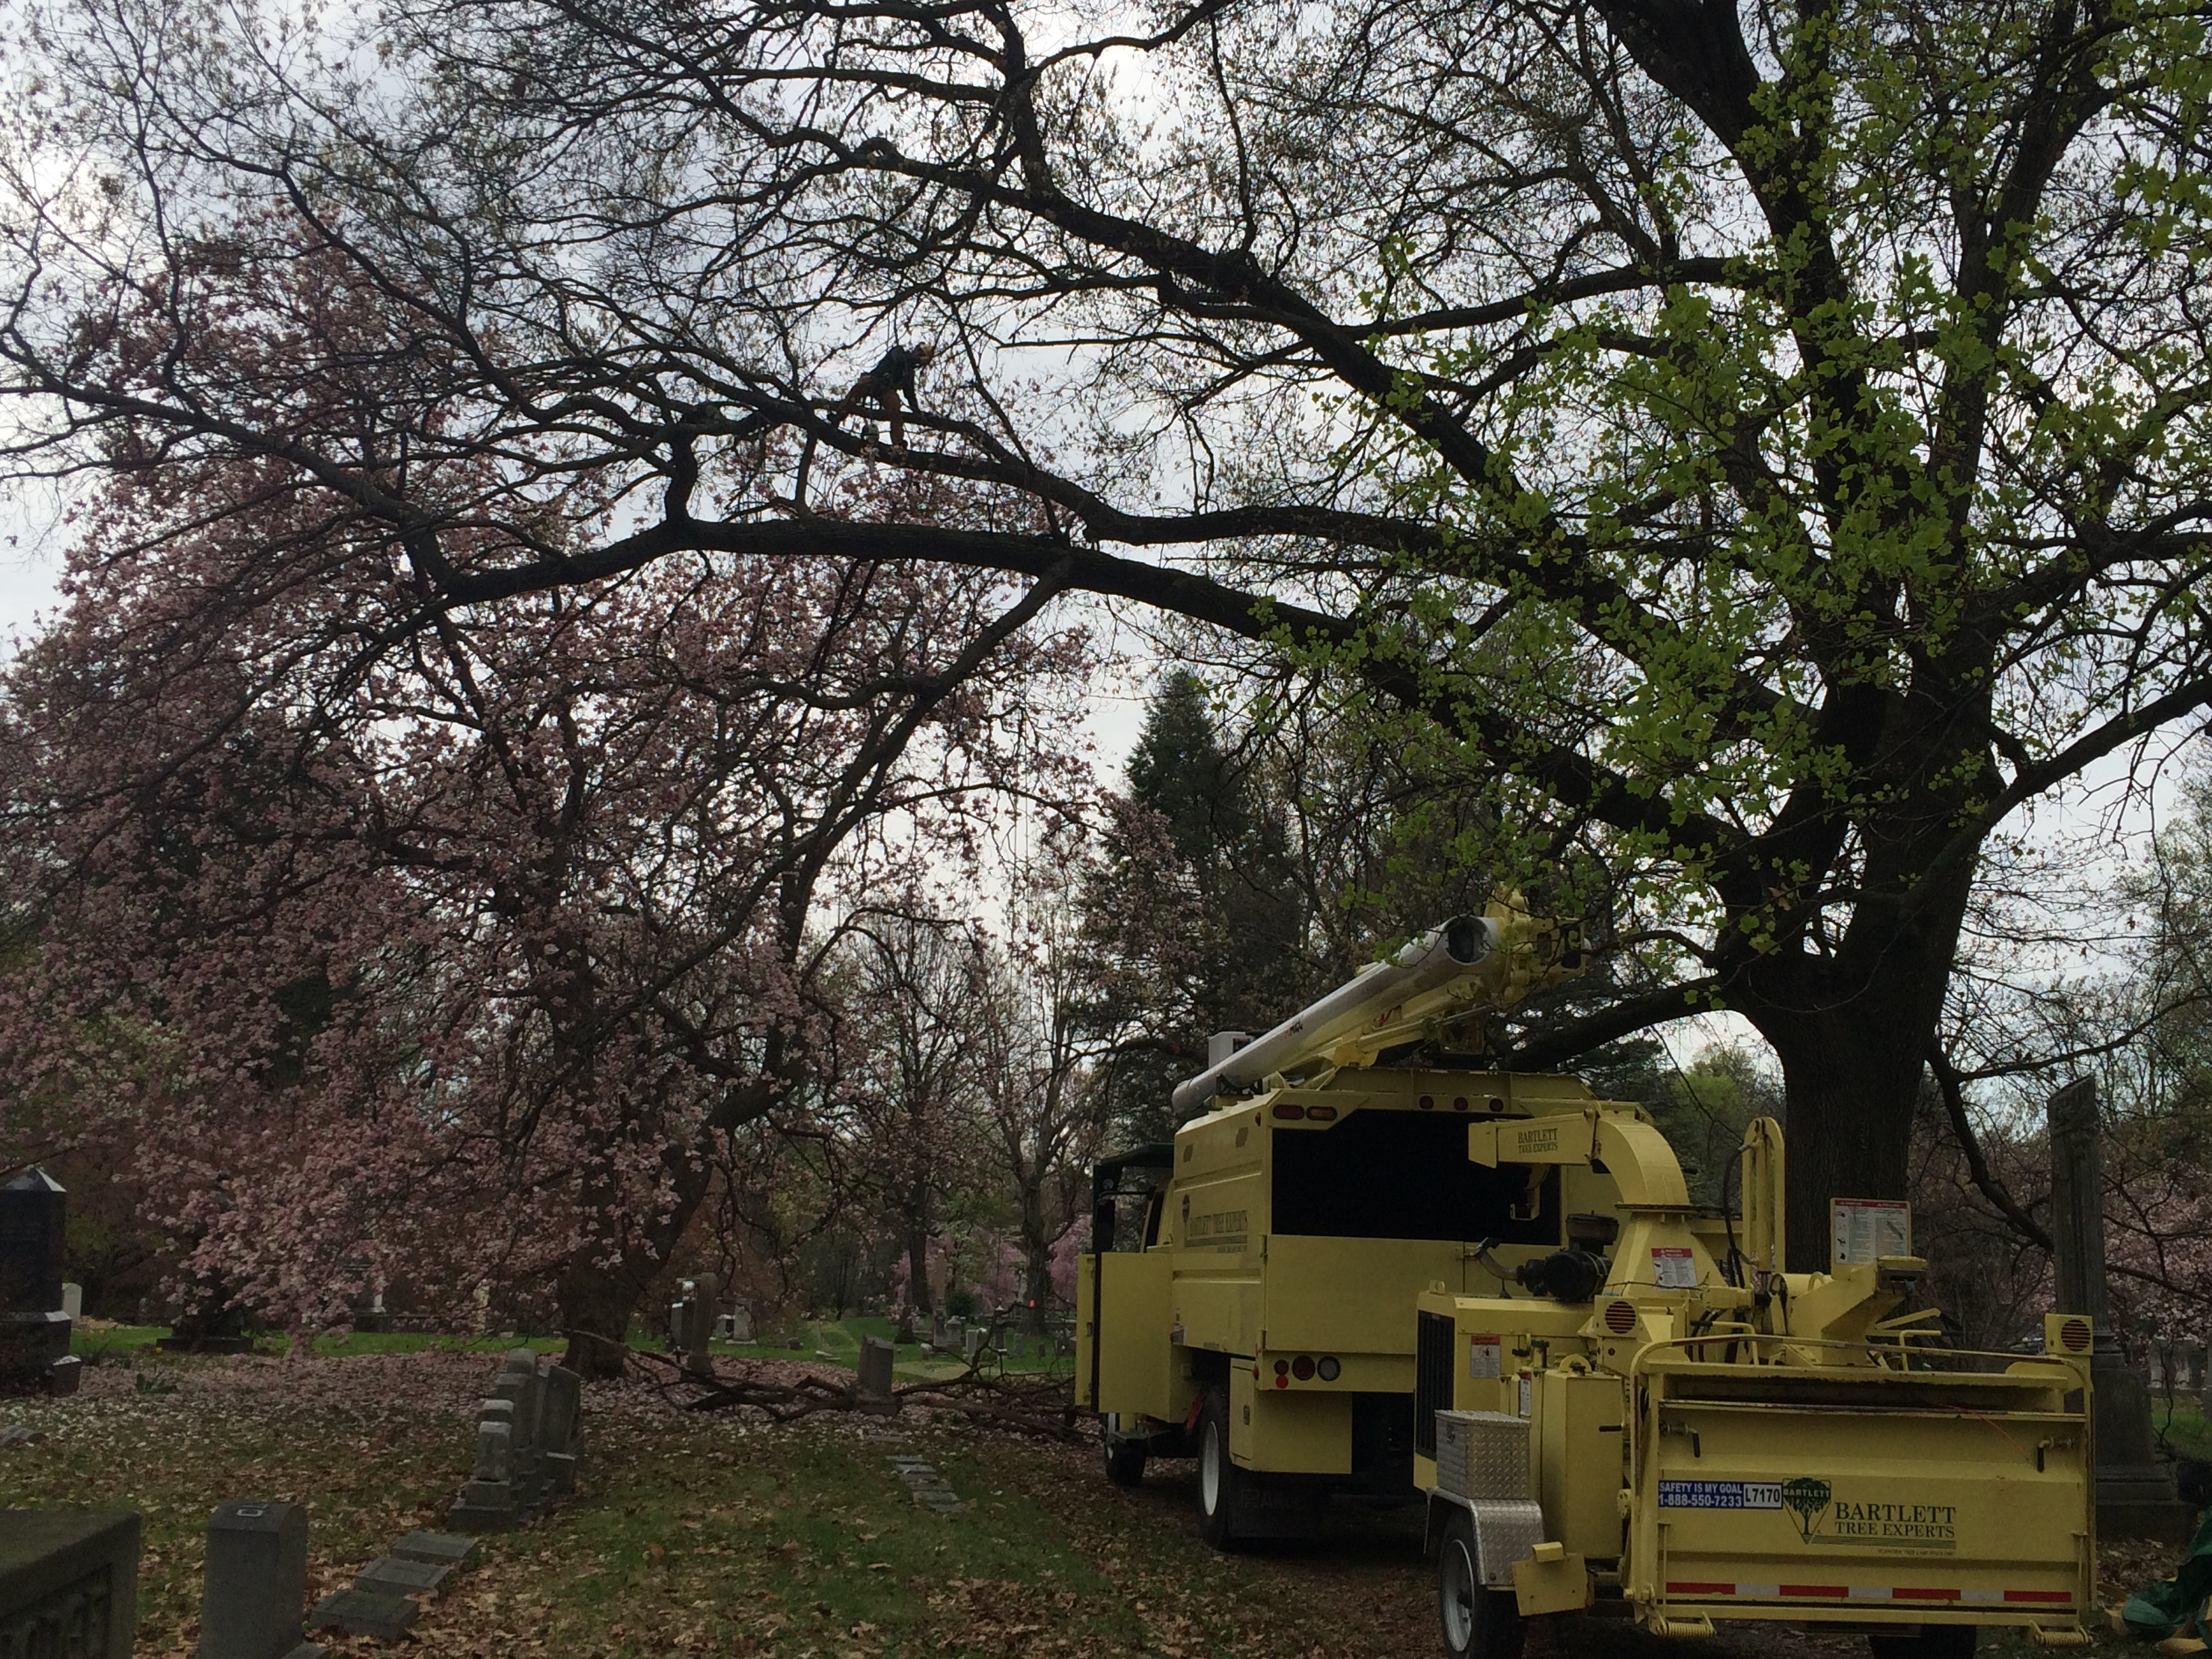 harrisburg cemetery - Arbor Day and Earth Day 2015